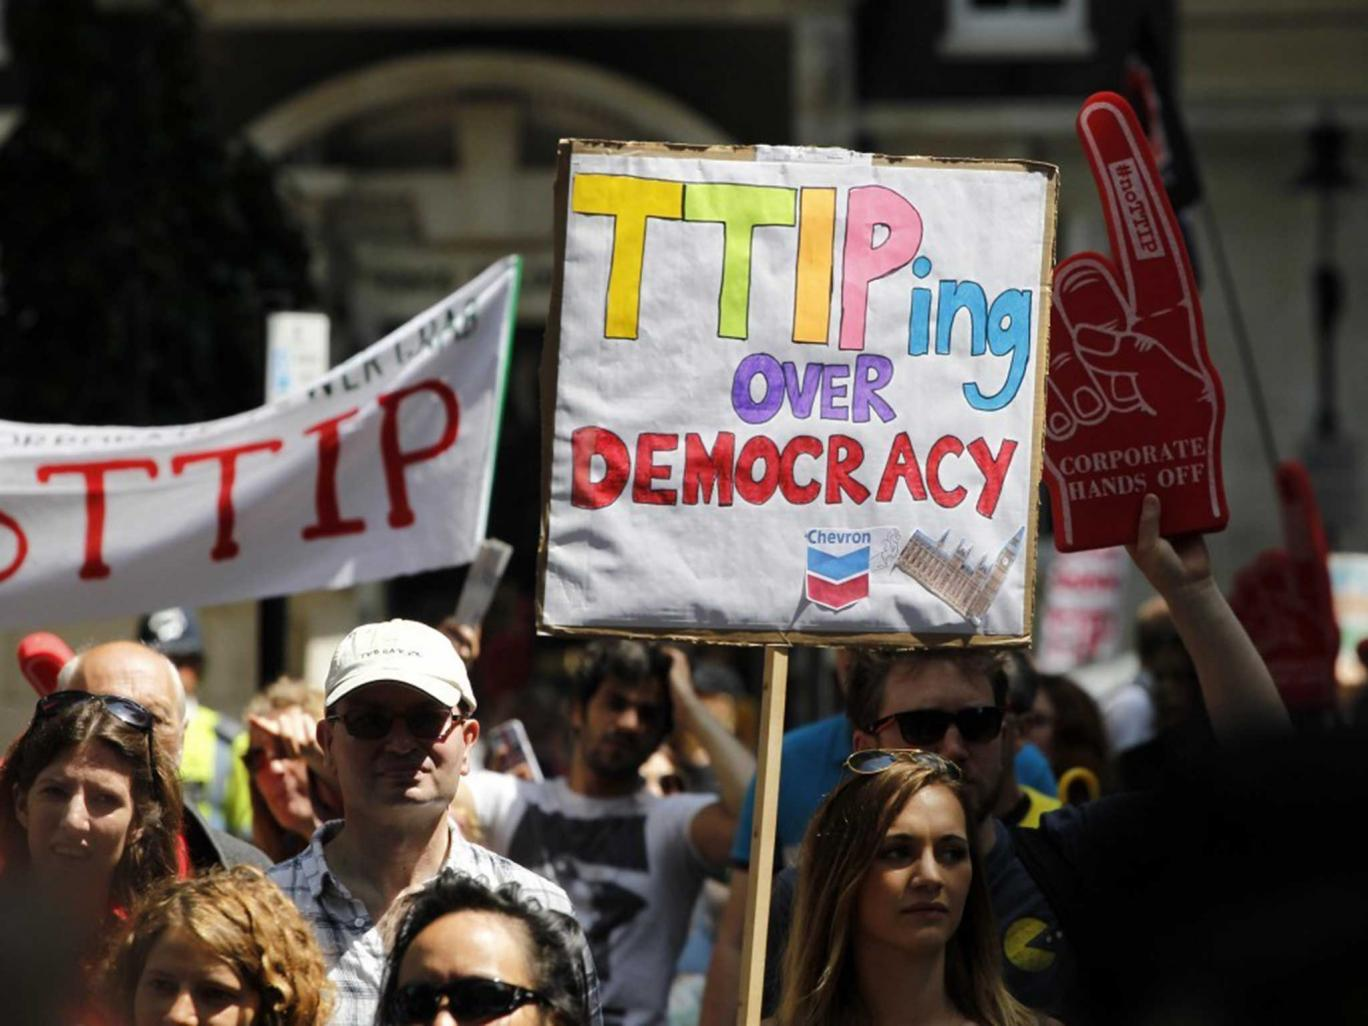 6 Things You Need To Know About TTIP